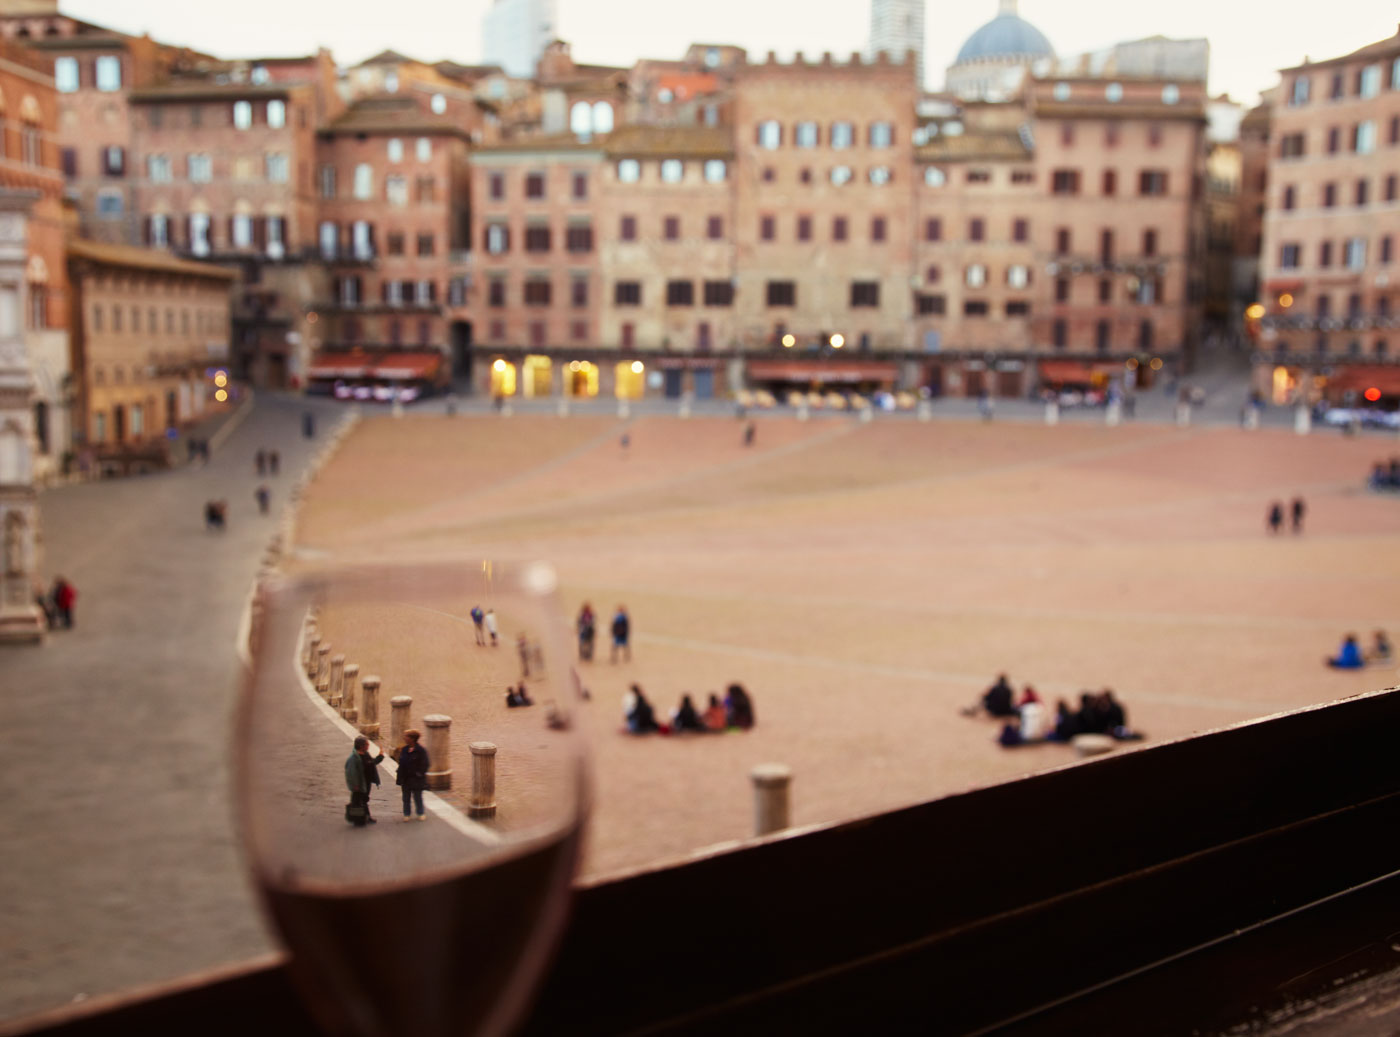 View of Il Campo, Siena, Italy